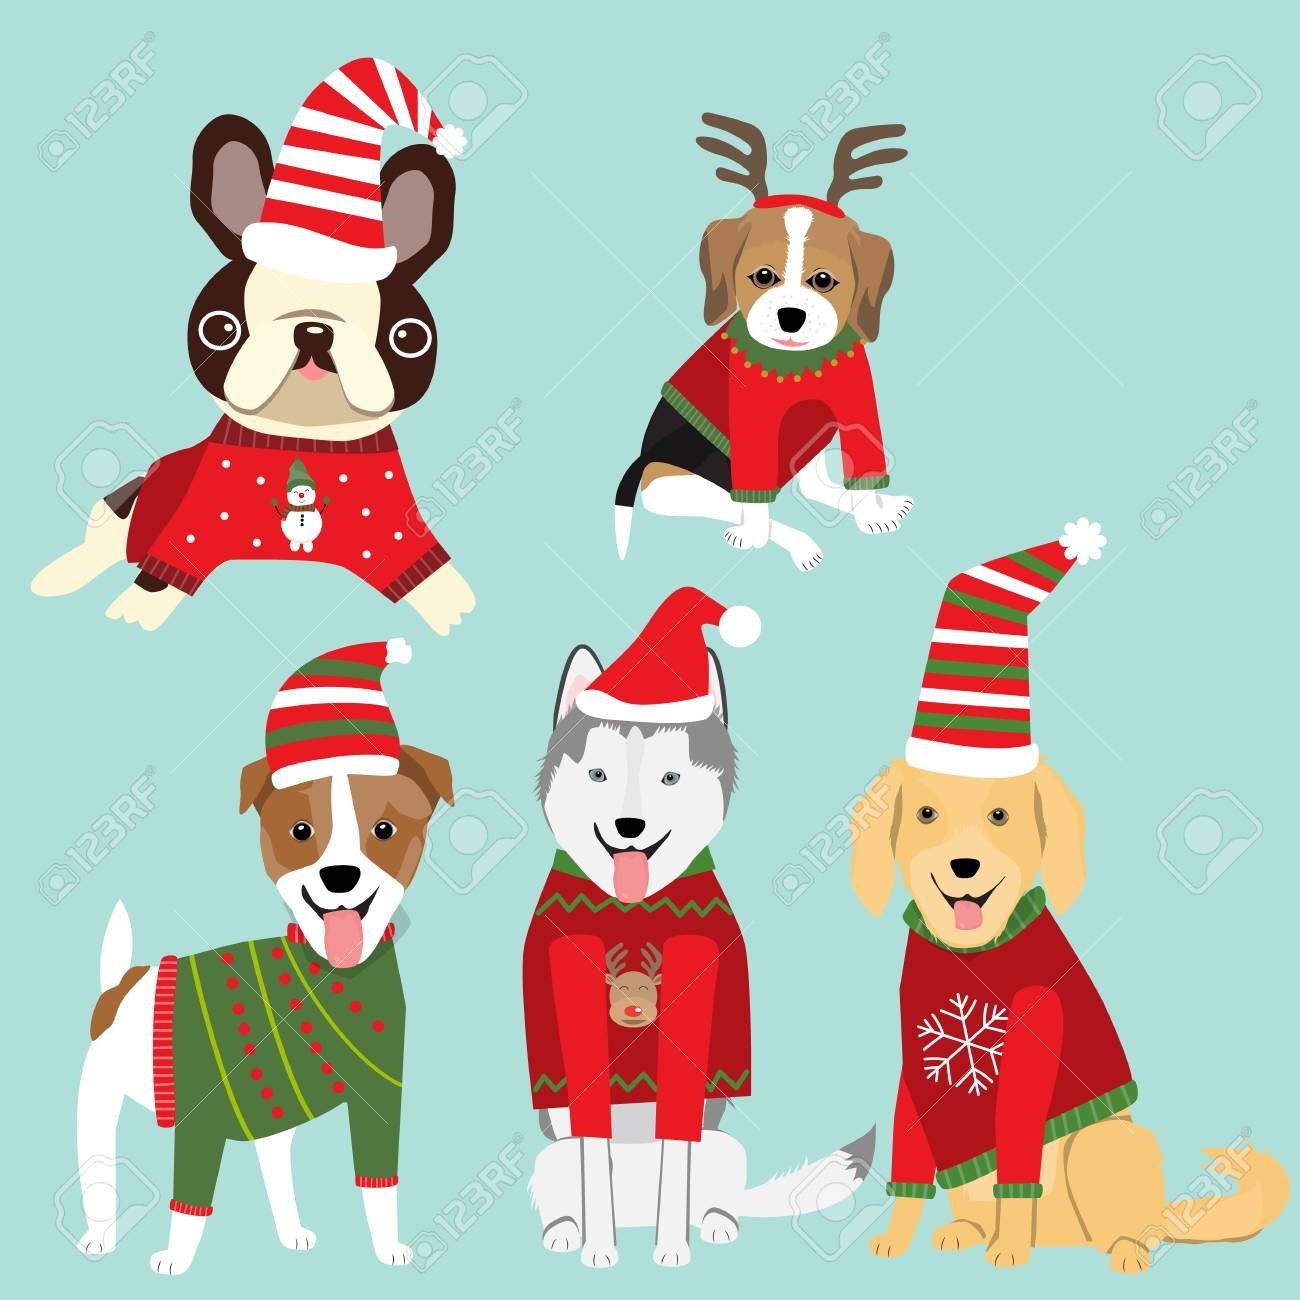 Christmas Sweaters For Dogs.Dogs In Christmas Sweater Celebret For Winter Greeting Season Illustration Eps10